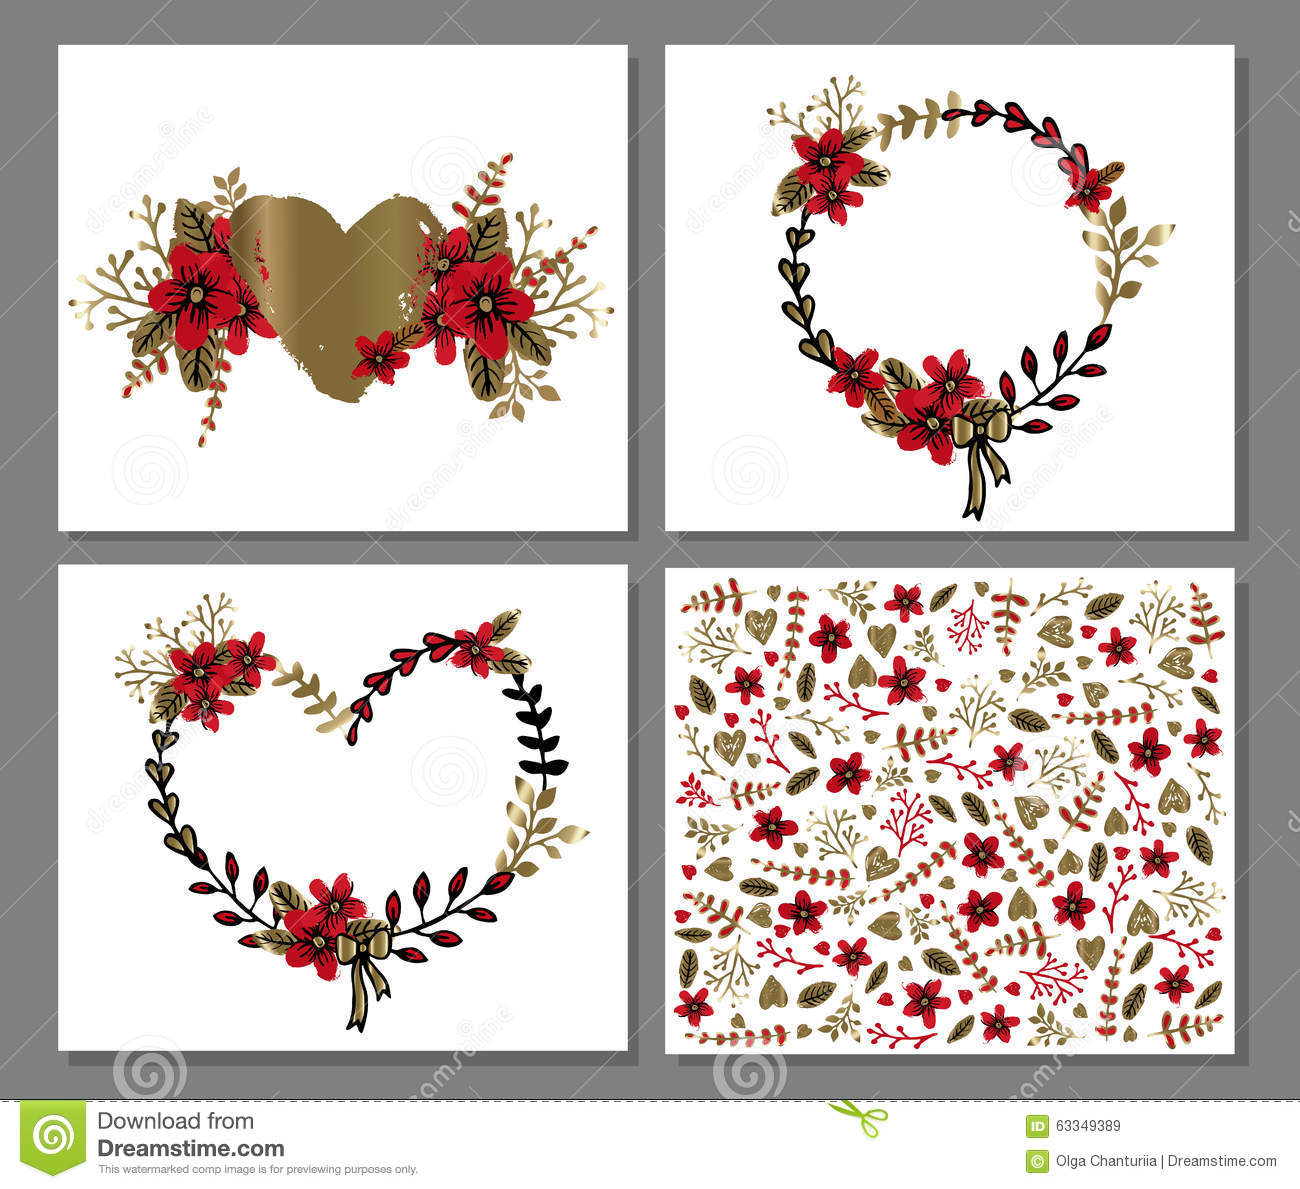 image about Printable Love Card known as Printable Passionate And Enjoy Card Template With Bouquets And